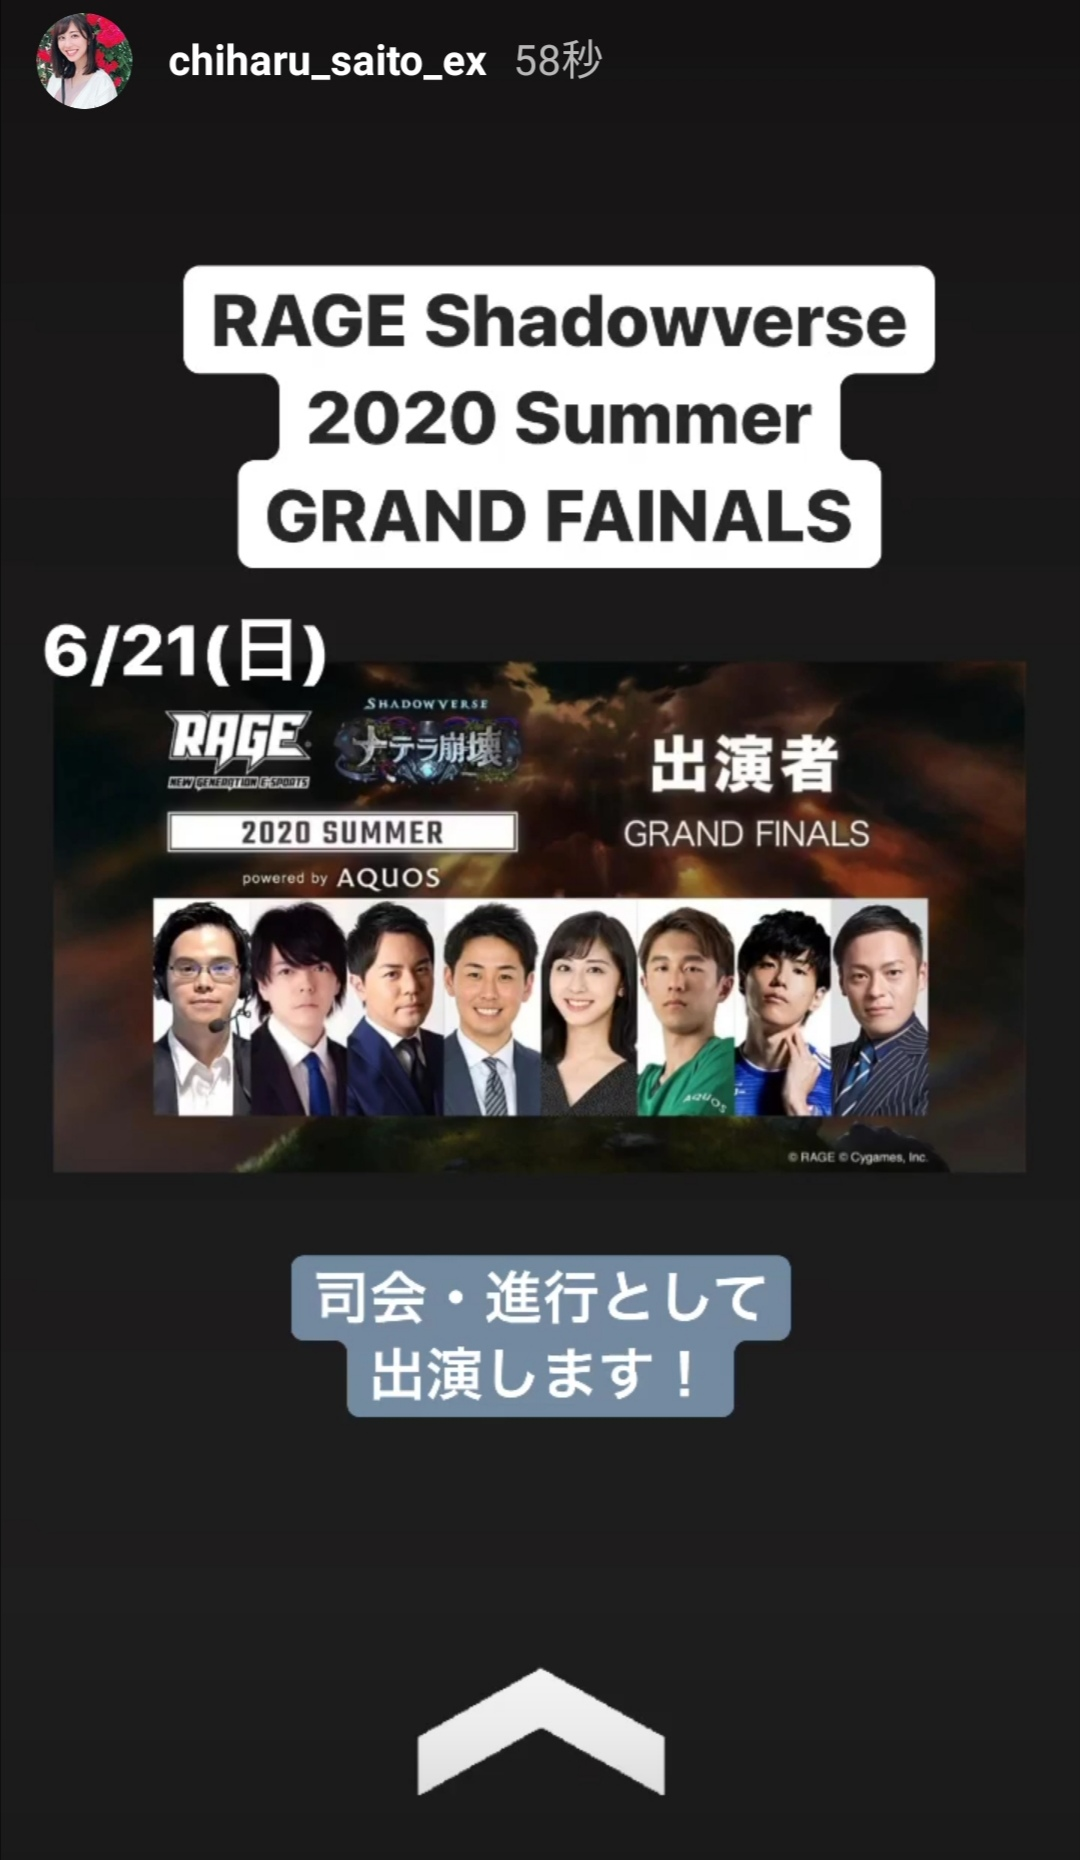 斎藤ちはるアナ RAGE Shadowverse 2020 Summer GRAND FINALS